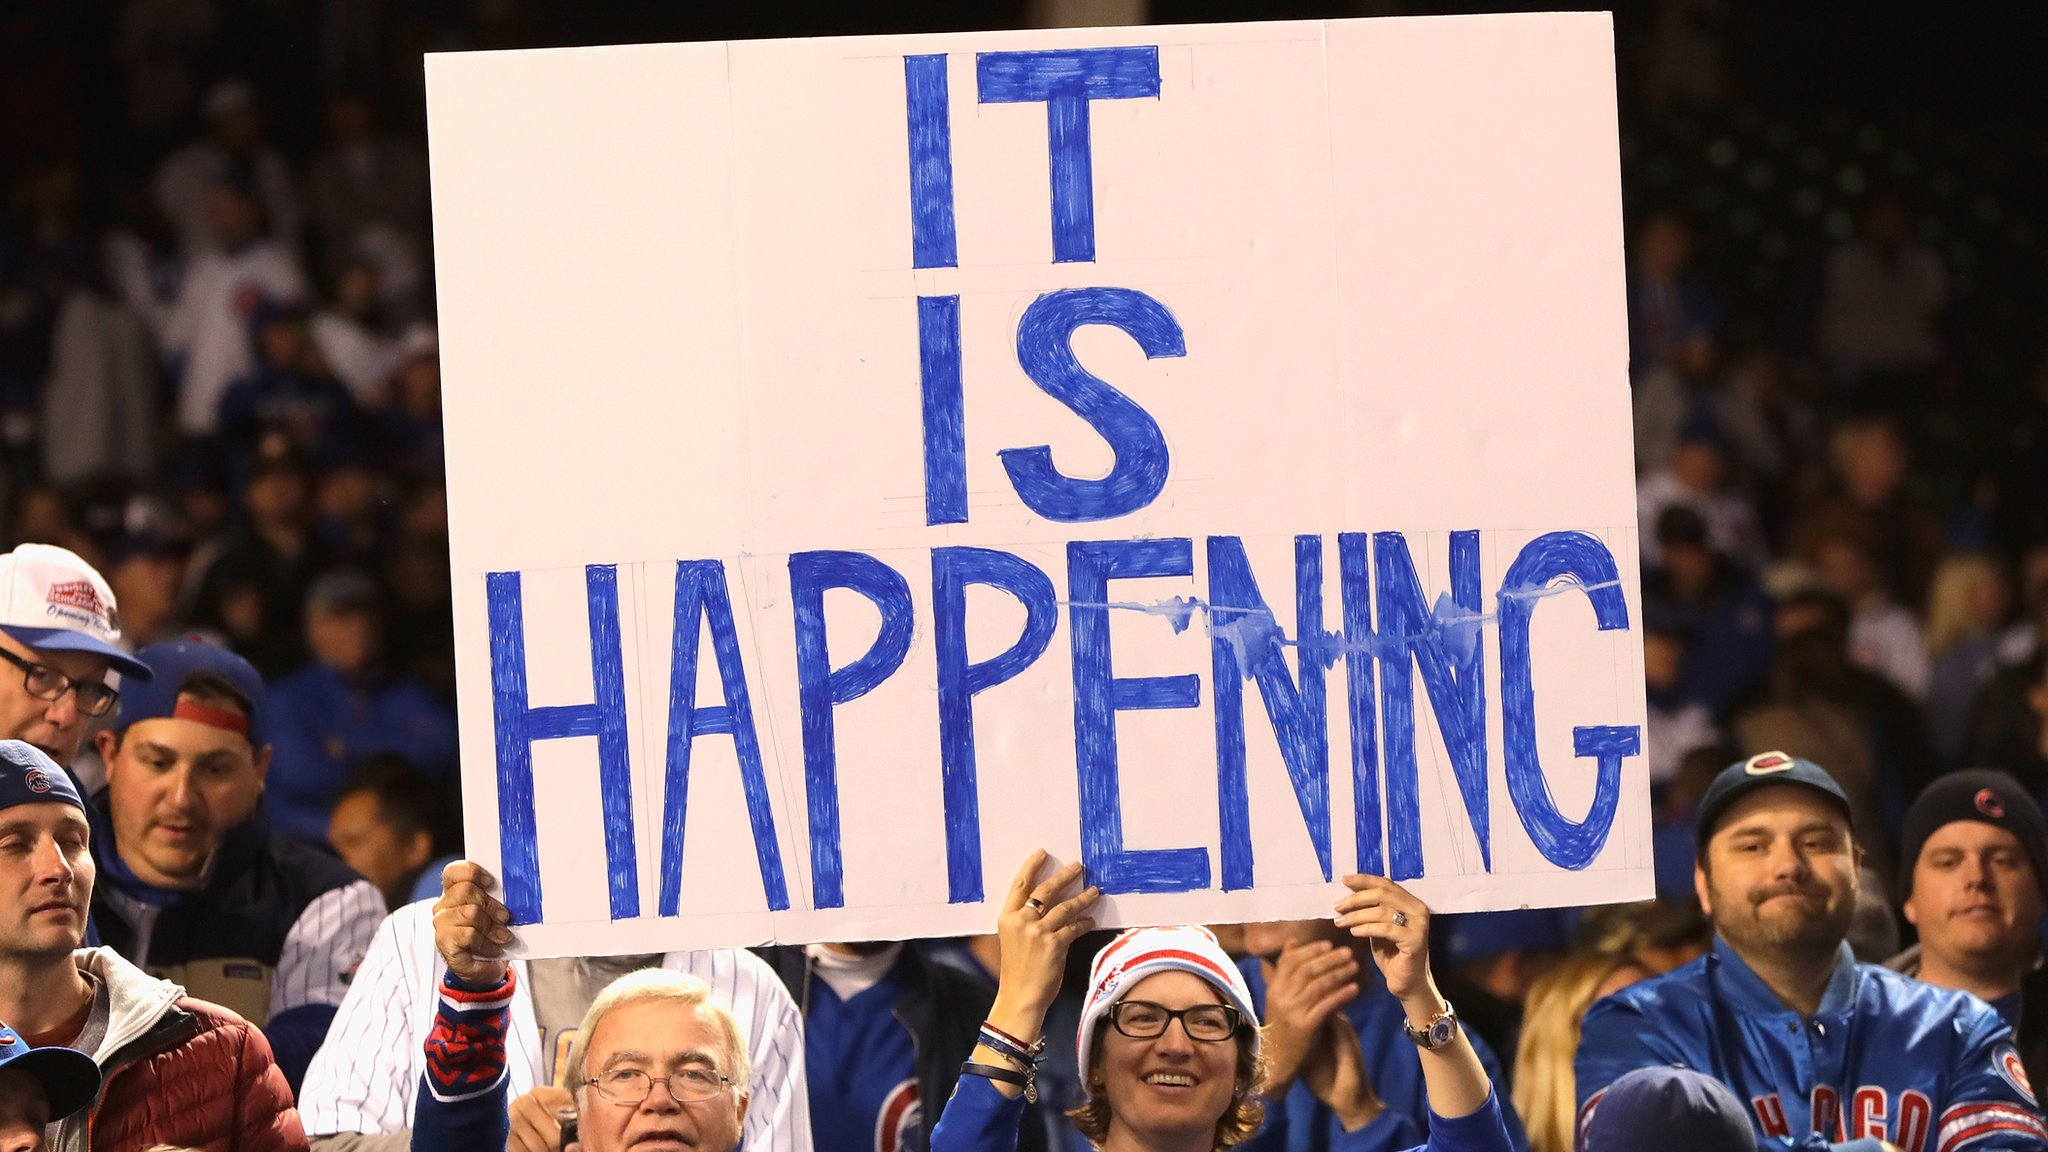 World Series 2016: Chicago Cubs aim to end century of hurt against Cleveland Indians